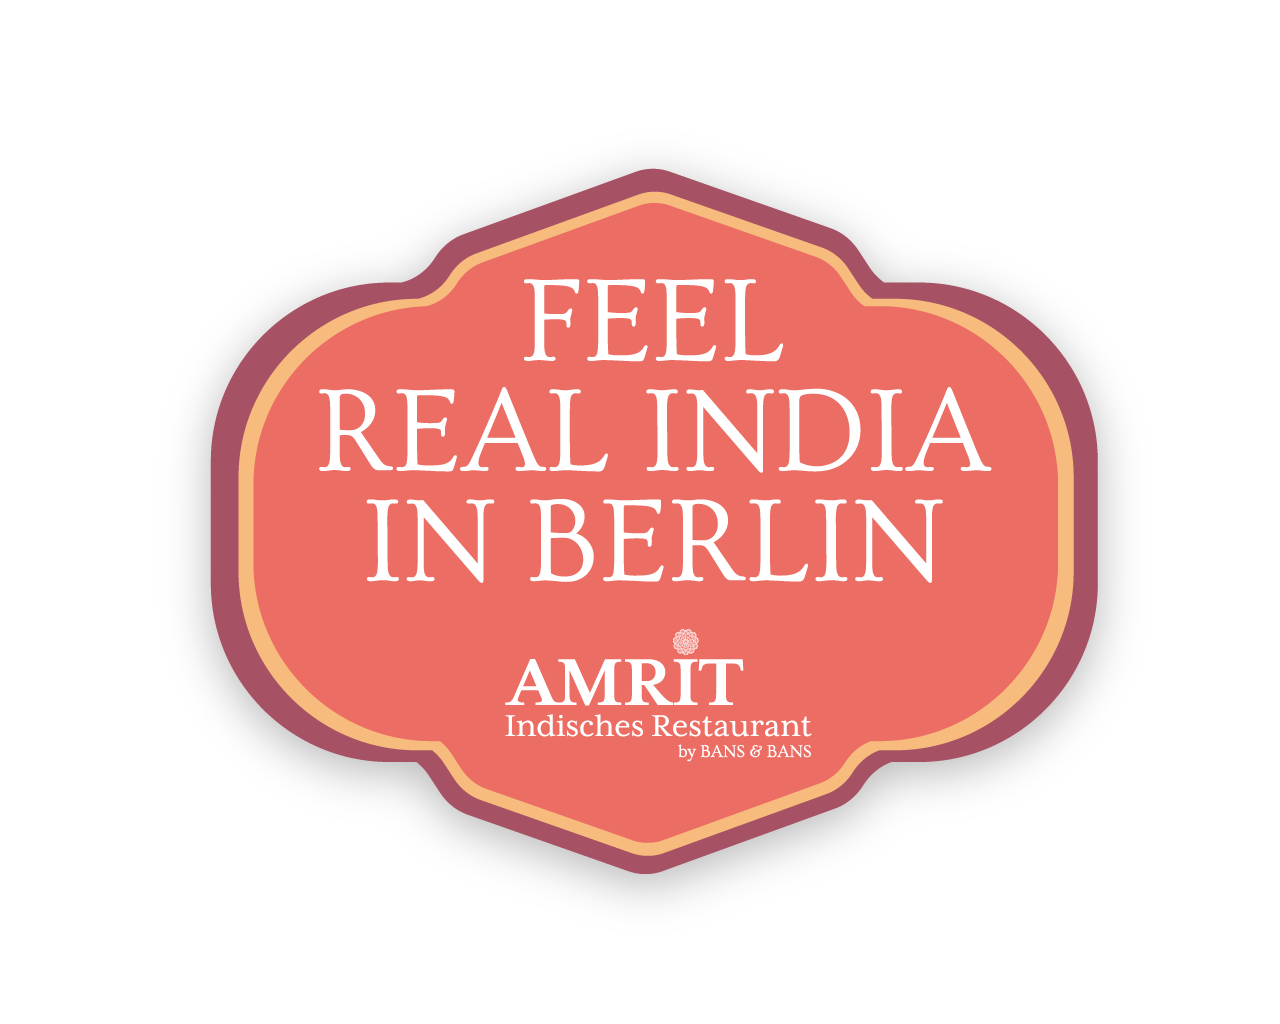 Amrit Berlin indisches Restaurant Logo Feel Real India